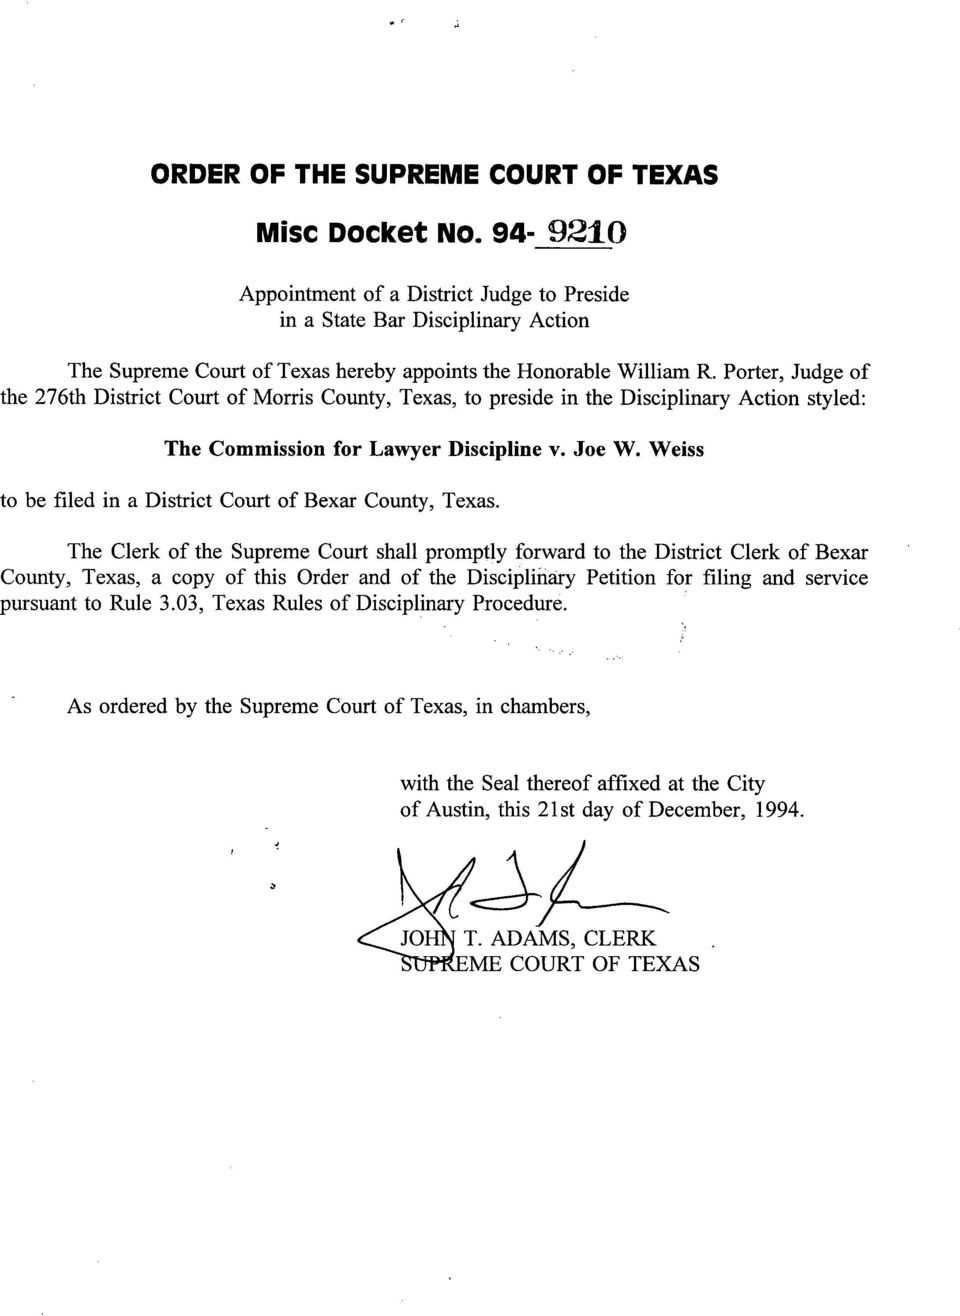 Porter, Judge of the 276th District Court of Morris County, Texas, to preside in the Disciplinary Action styled: The Commission for Lawyer Discipline v. Joe W.